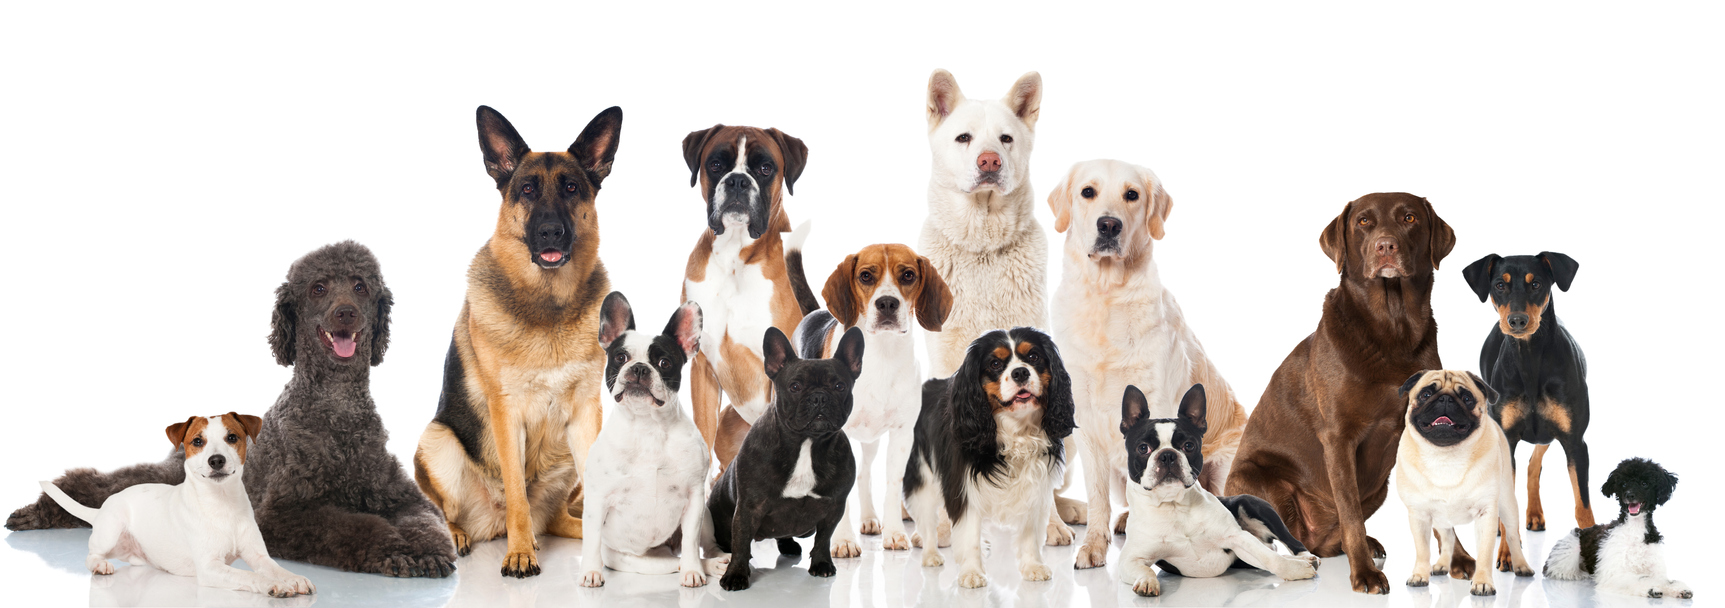 hesca health and science of pets